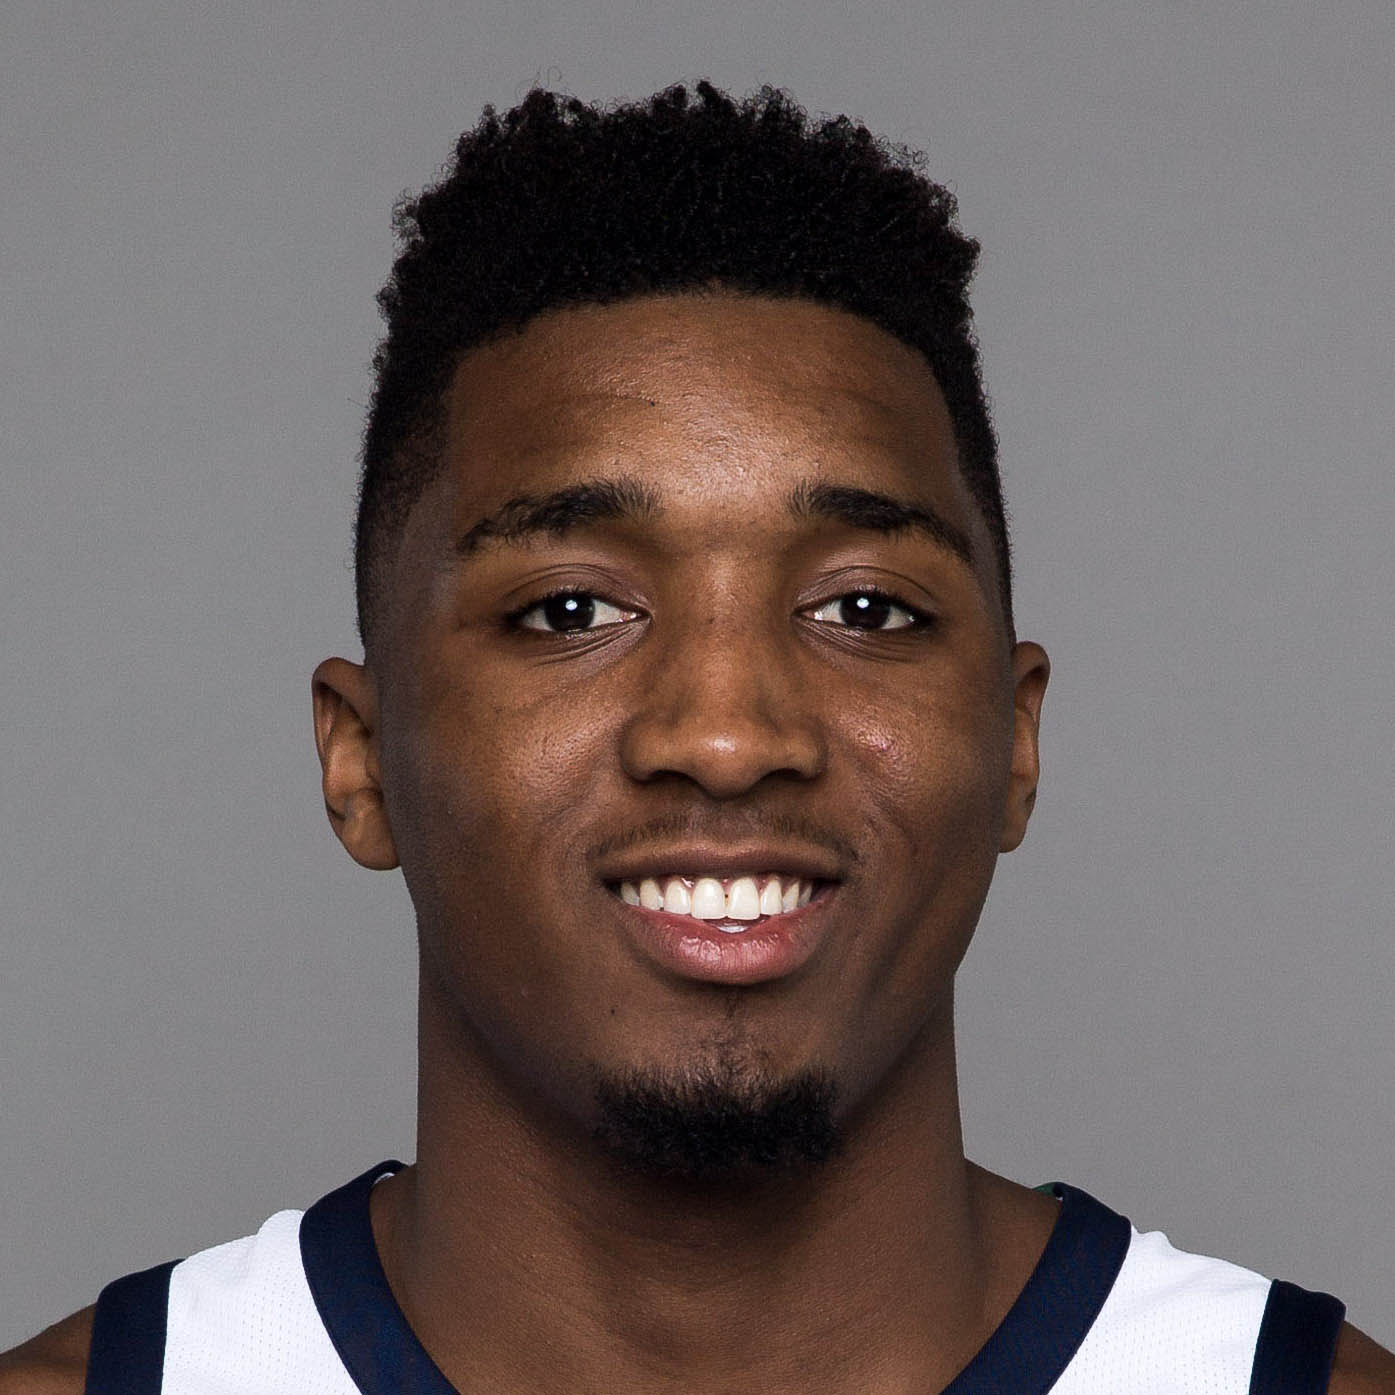 Donovan Mitchell Headshot